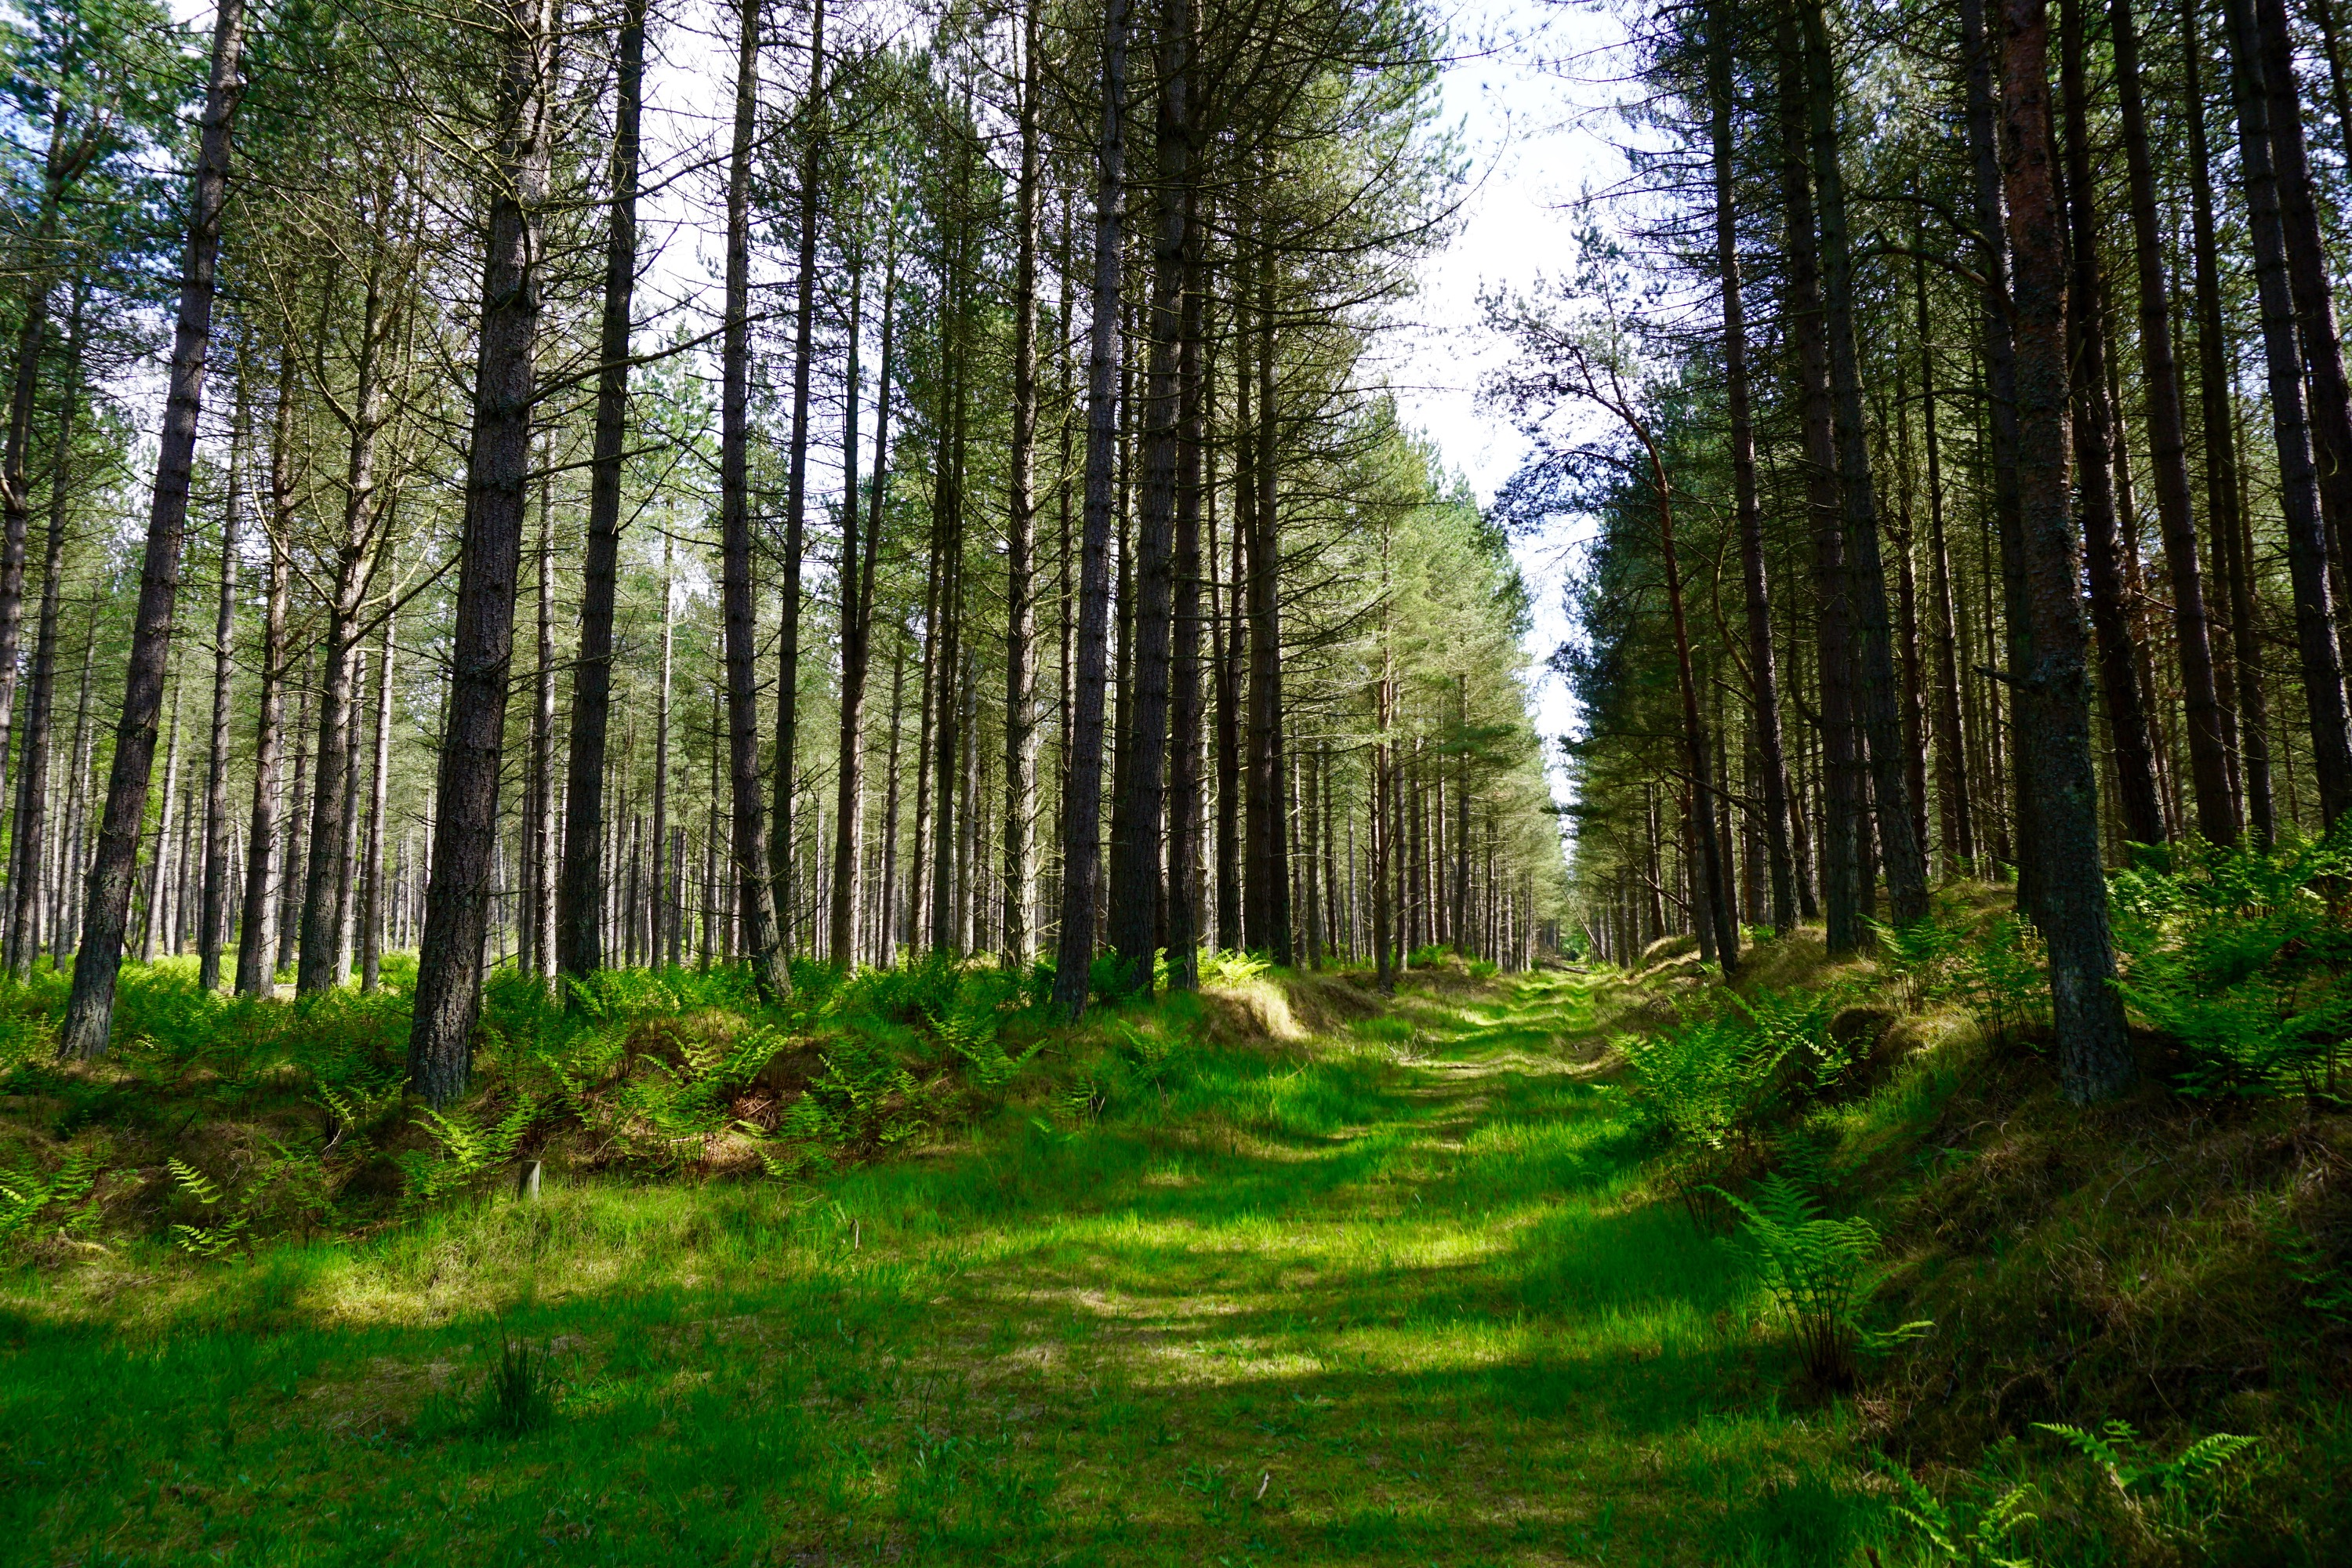 our stroll through the Scottish forest